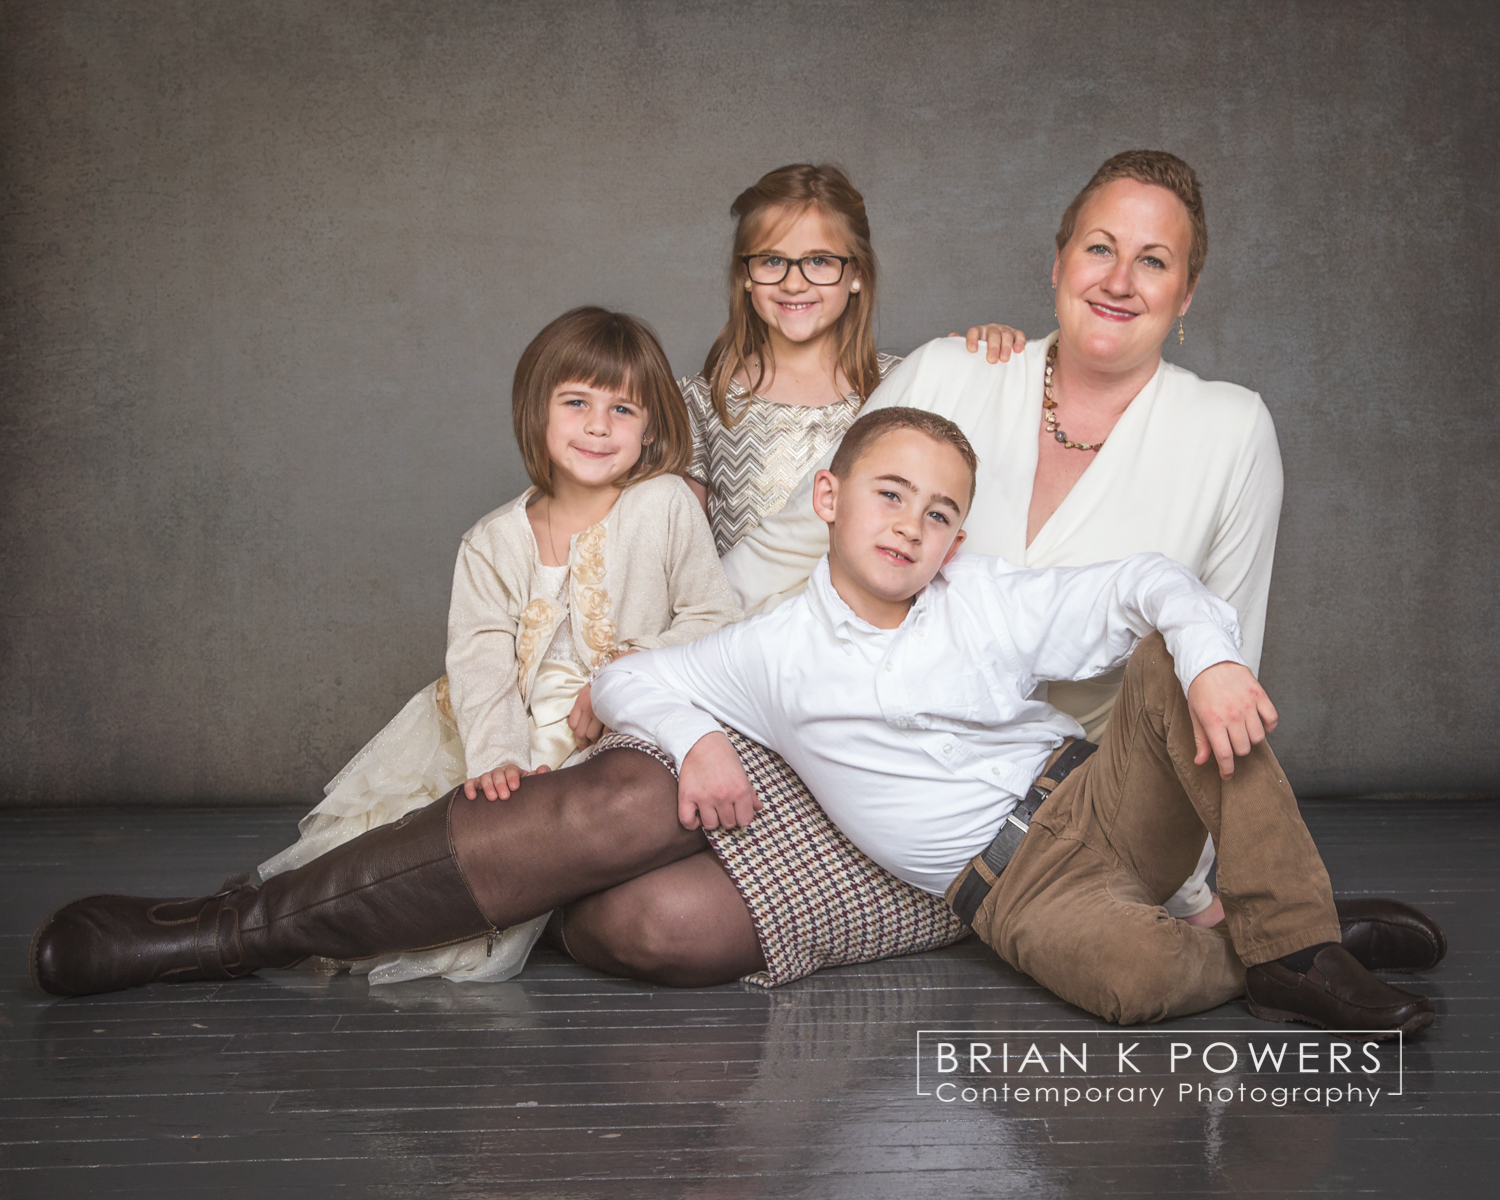 Portrait-Website McBride-Family_portrait_with_children-005.jpg